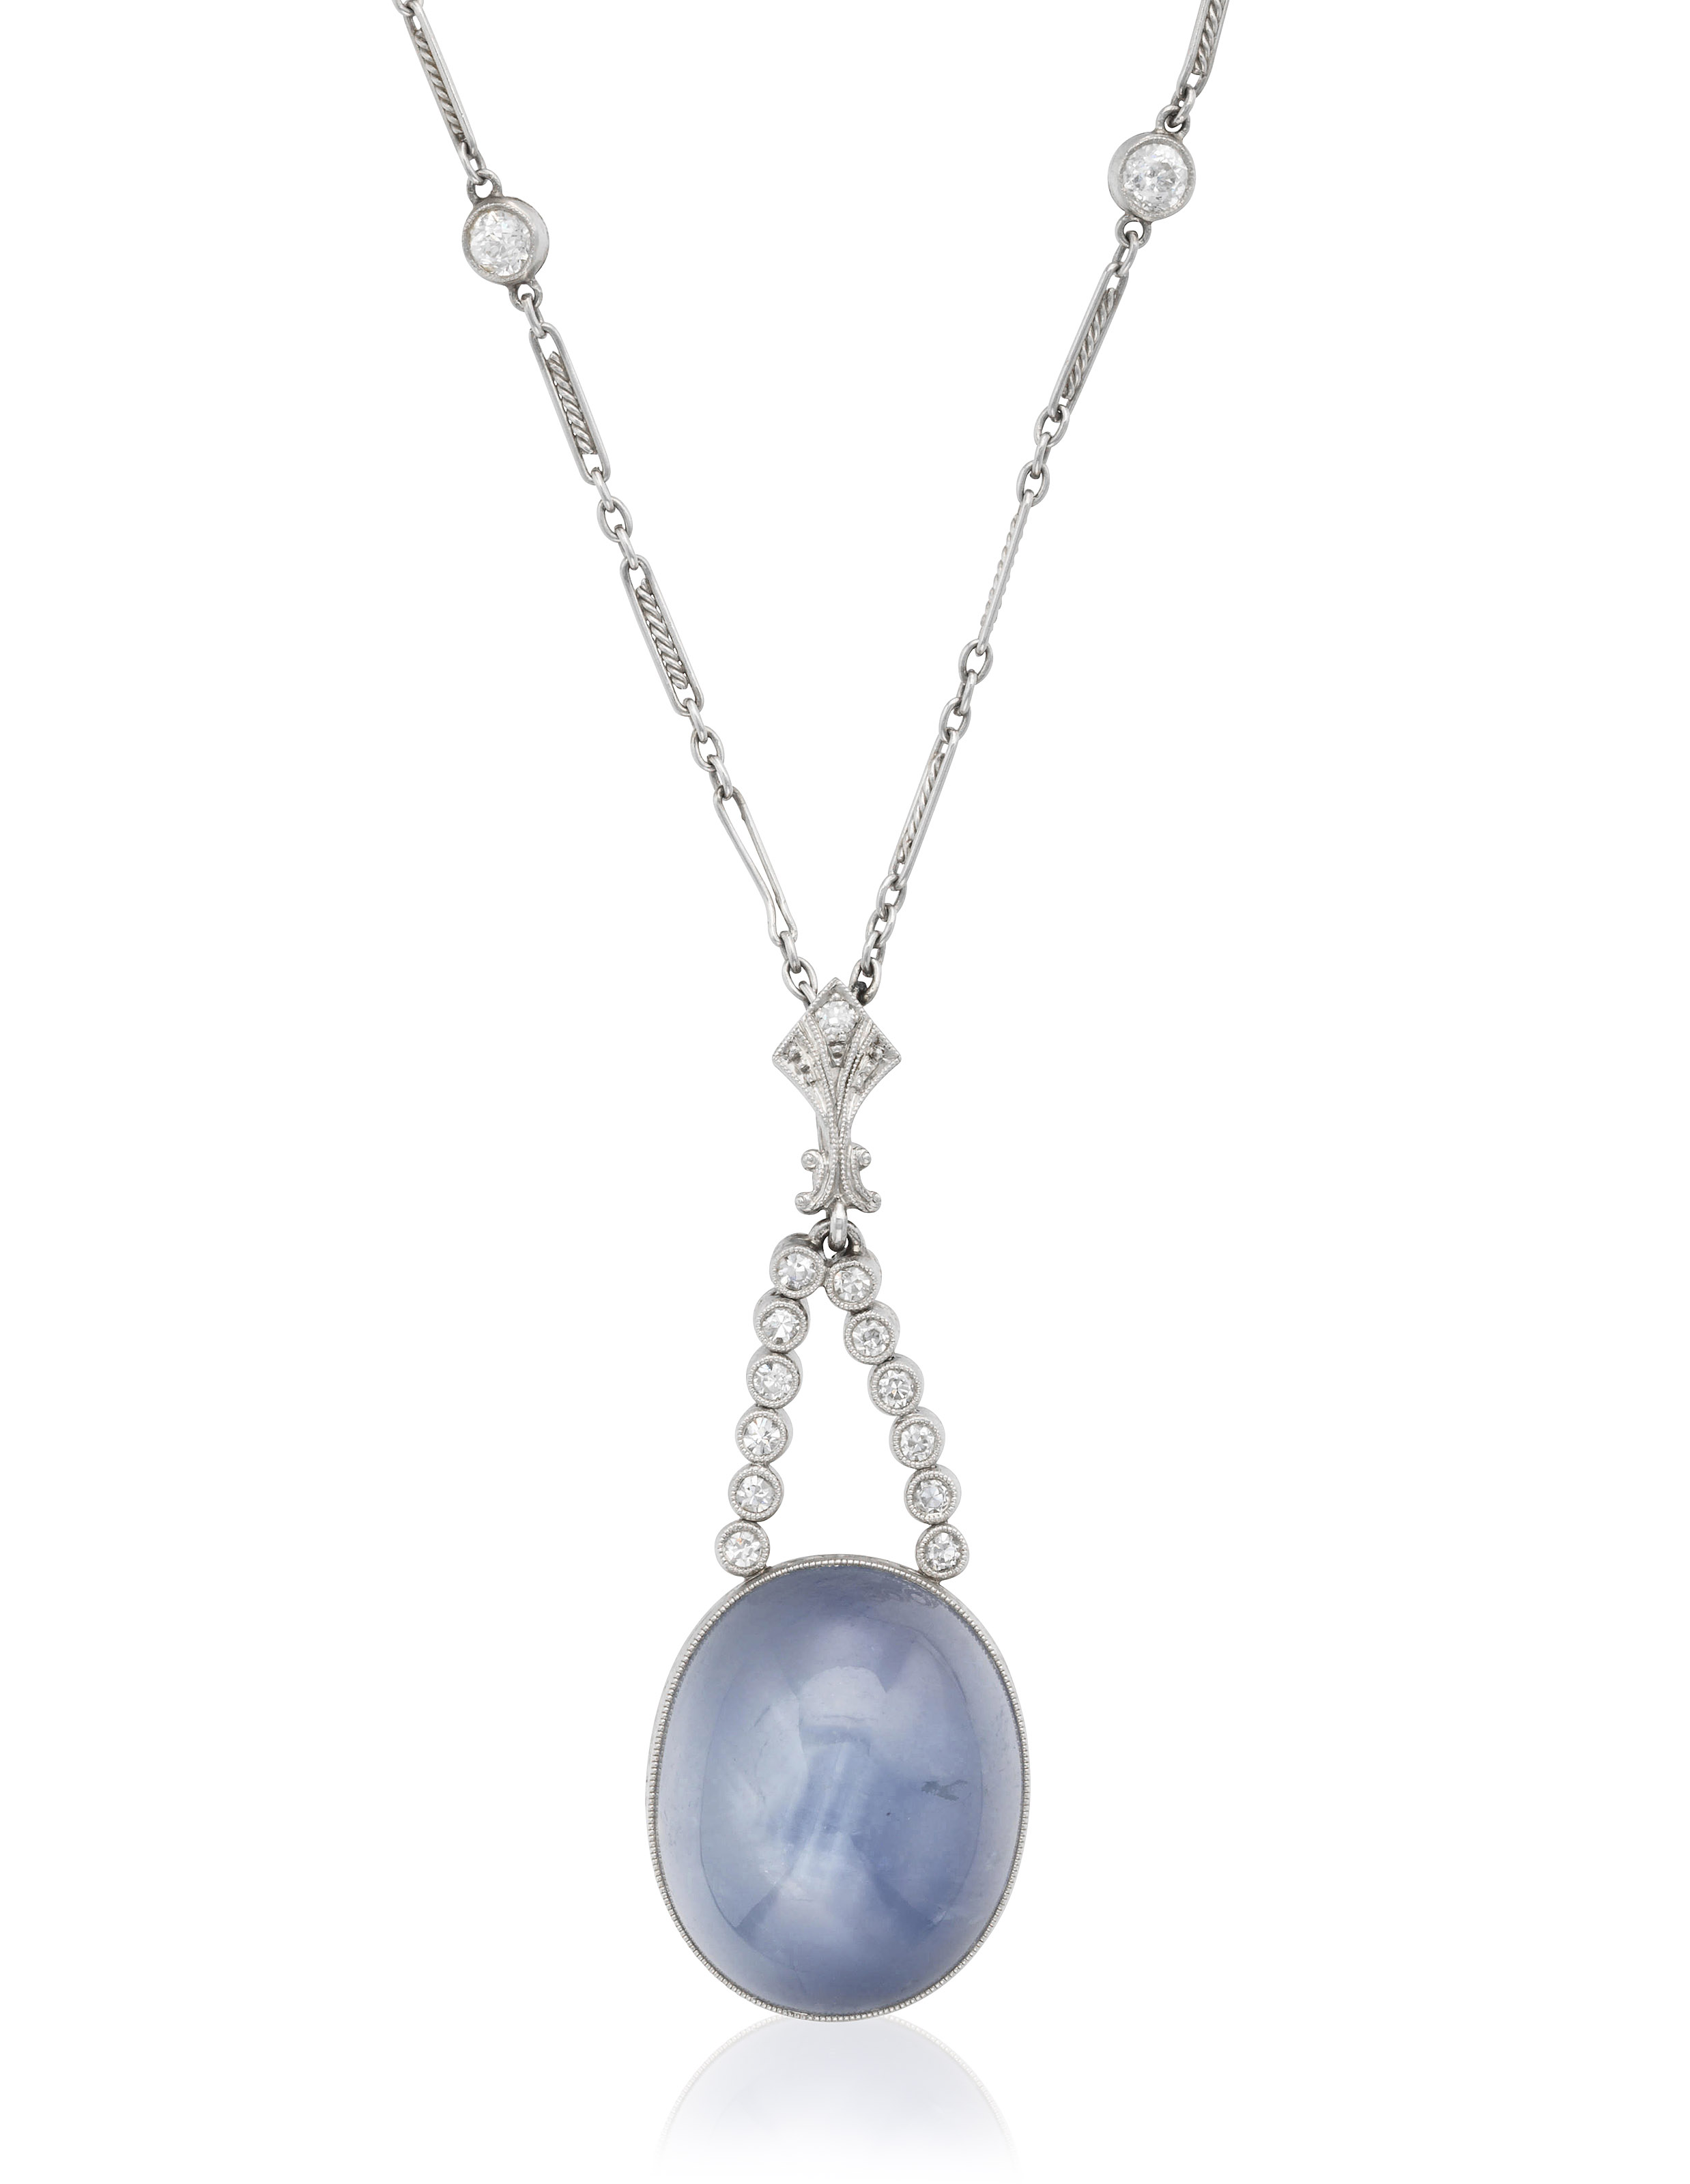 STAR SAPPHIRE AND DIAMOND PENDANT NECKLACE Christie s STAR